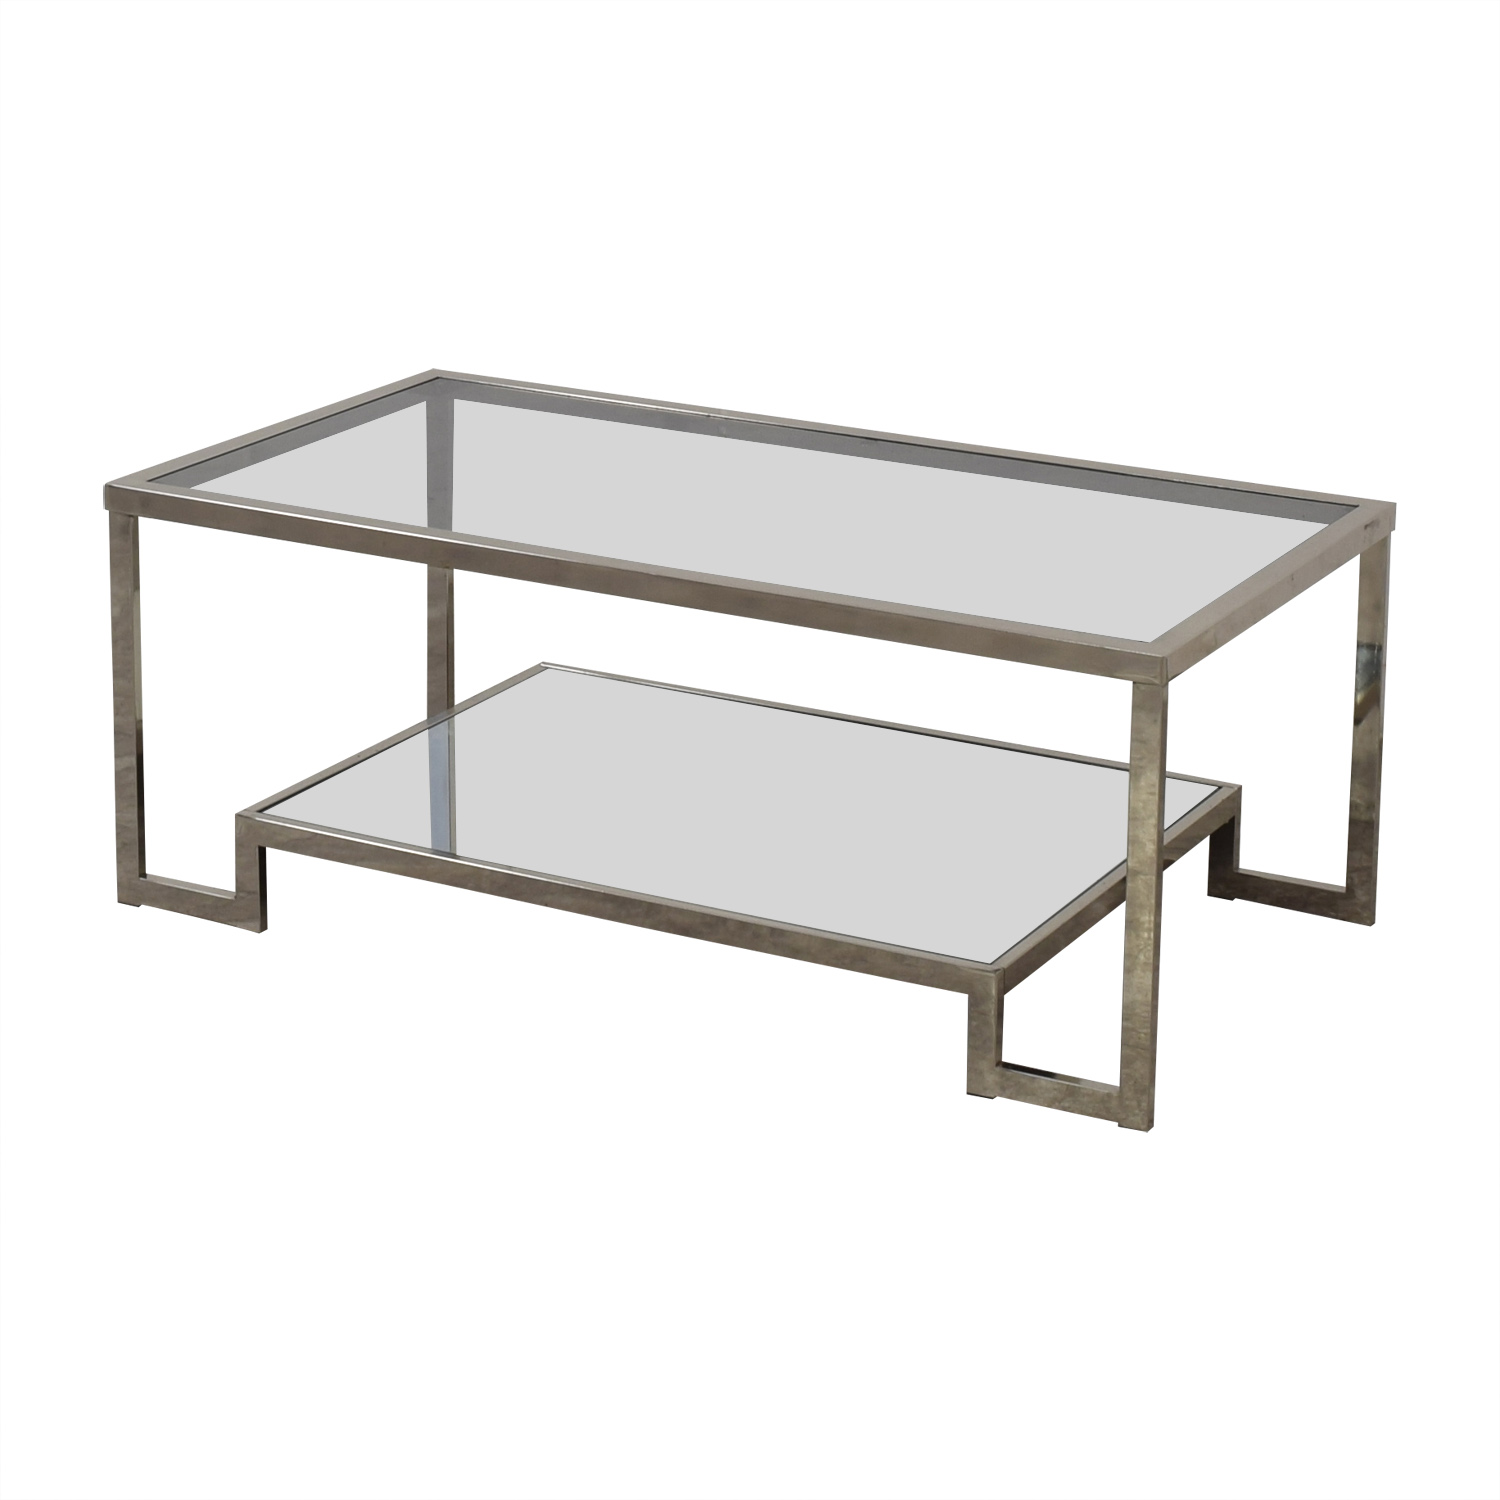 Overstock Overstock Glass Coffee Table